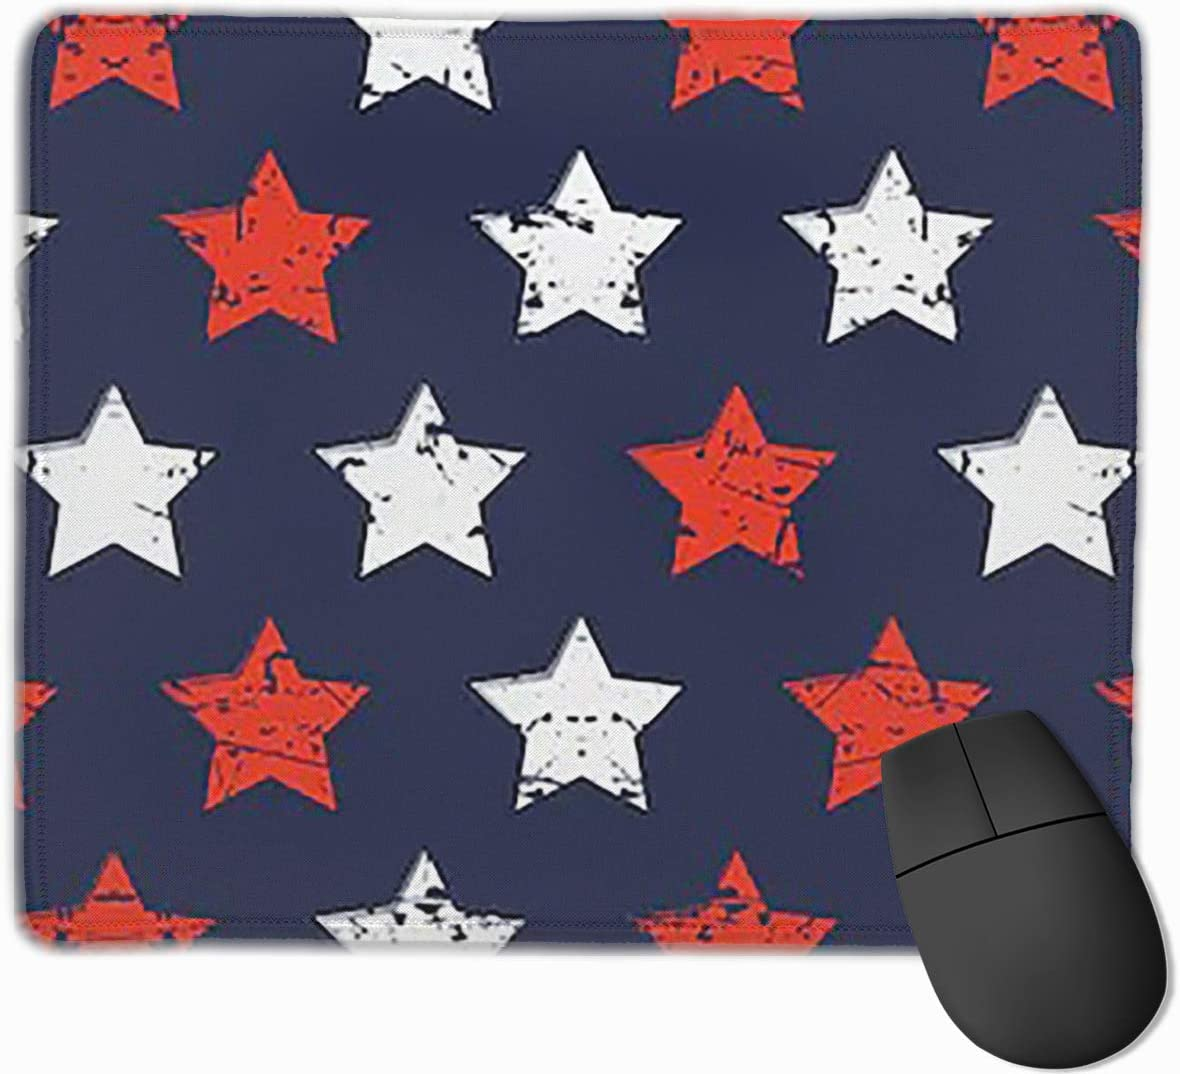 2530 Joyce-life Hand Drawn Pattern Mouse Pads for Computers Laptop Non-Slip Rubber Base Stitched Edge Waterproof Office Mouse Pad Office Gaming Computer at Home Or Work Size